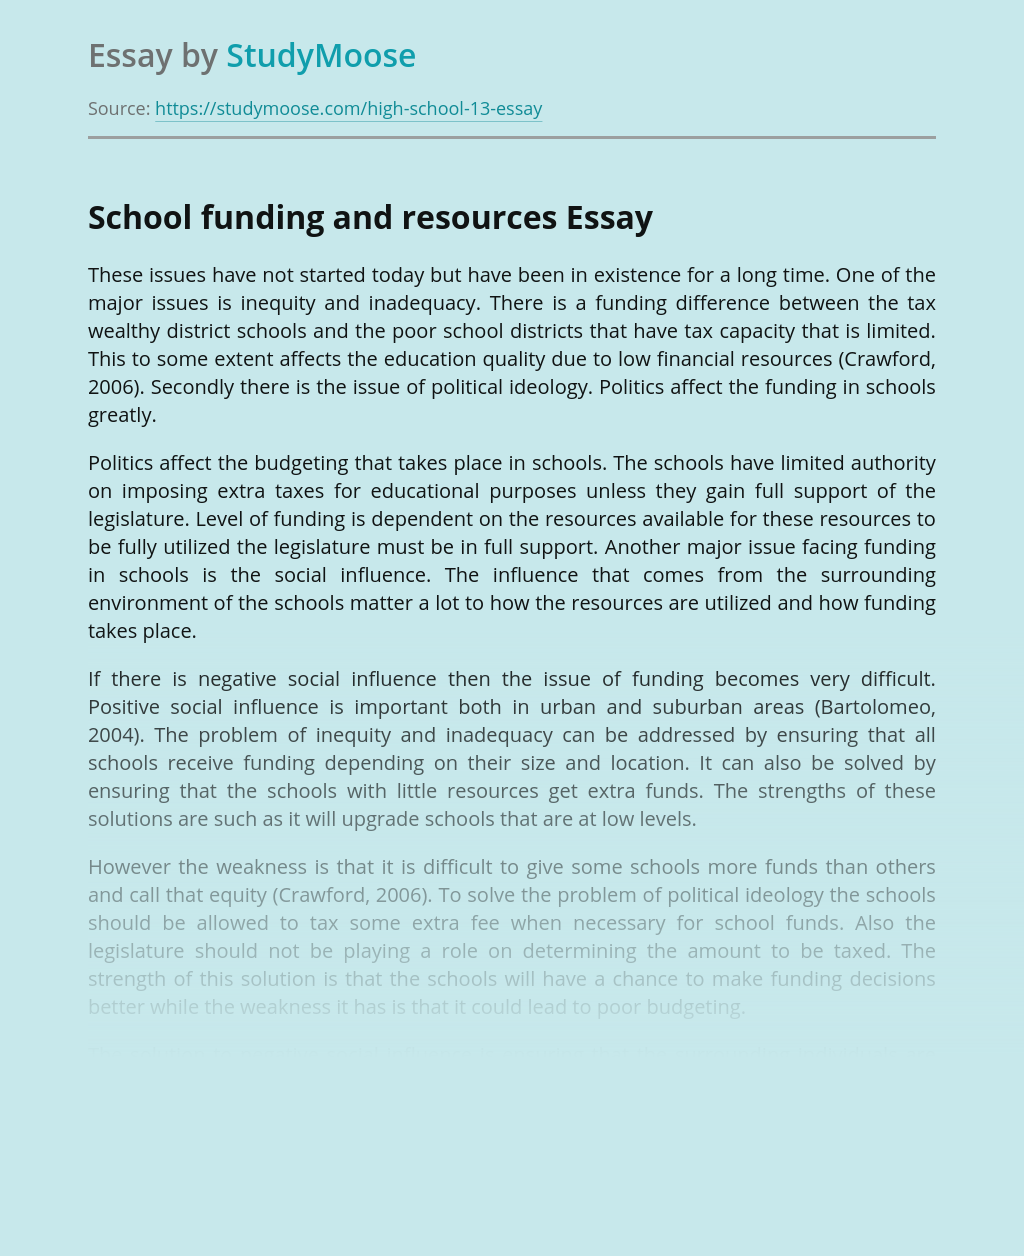 School funding and resources